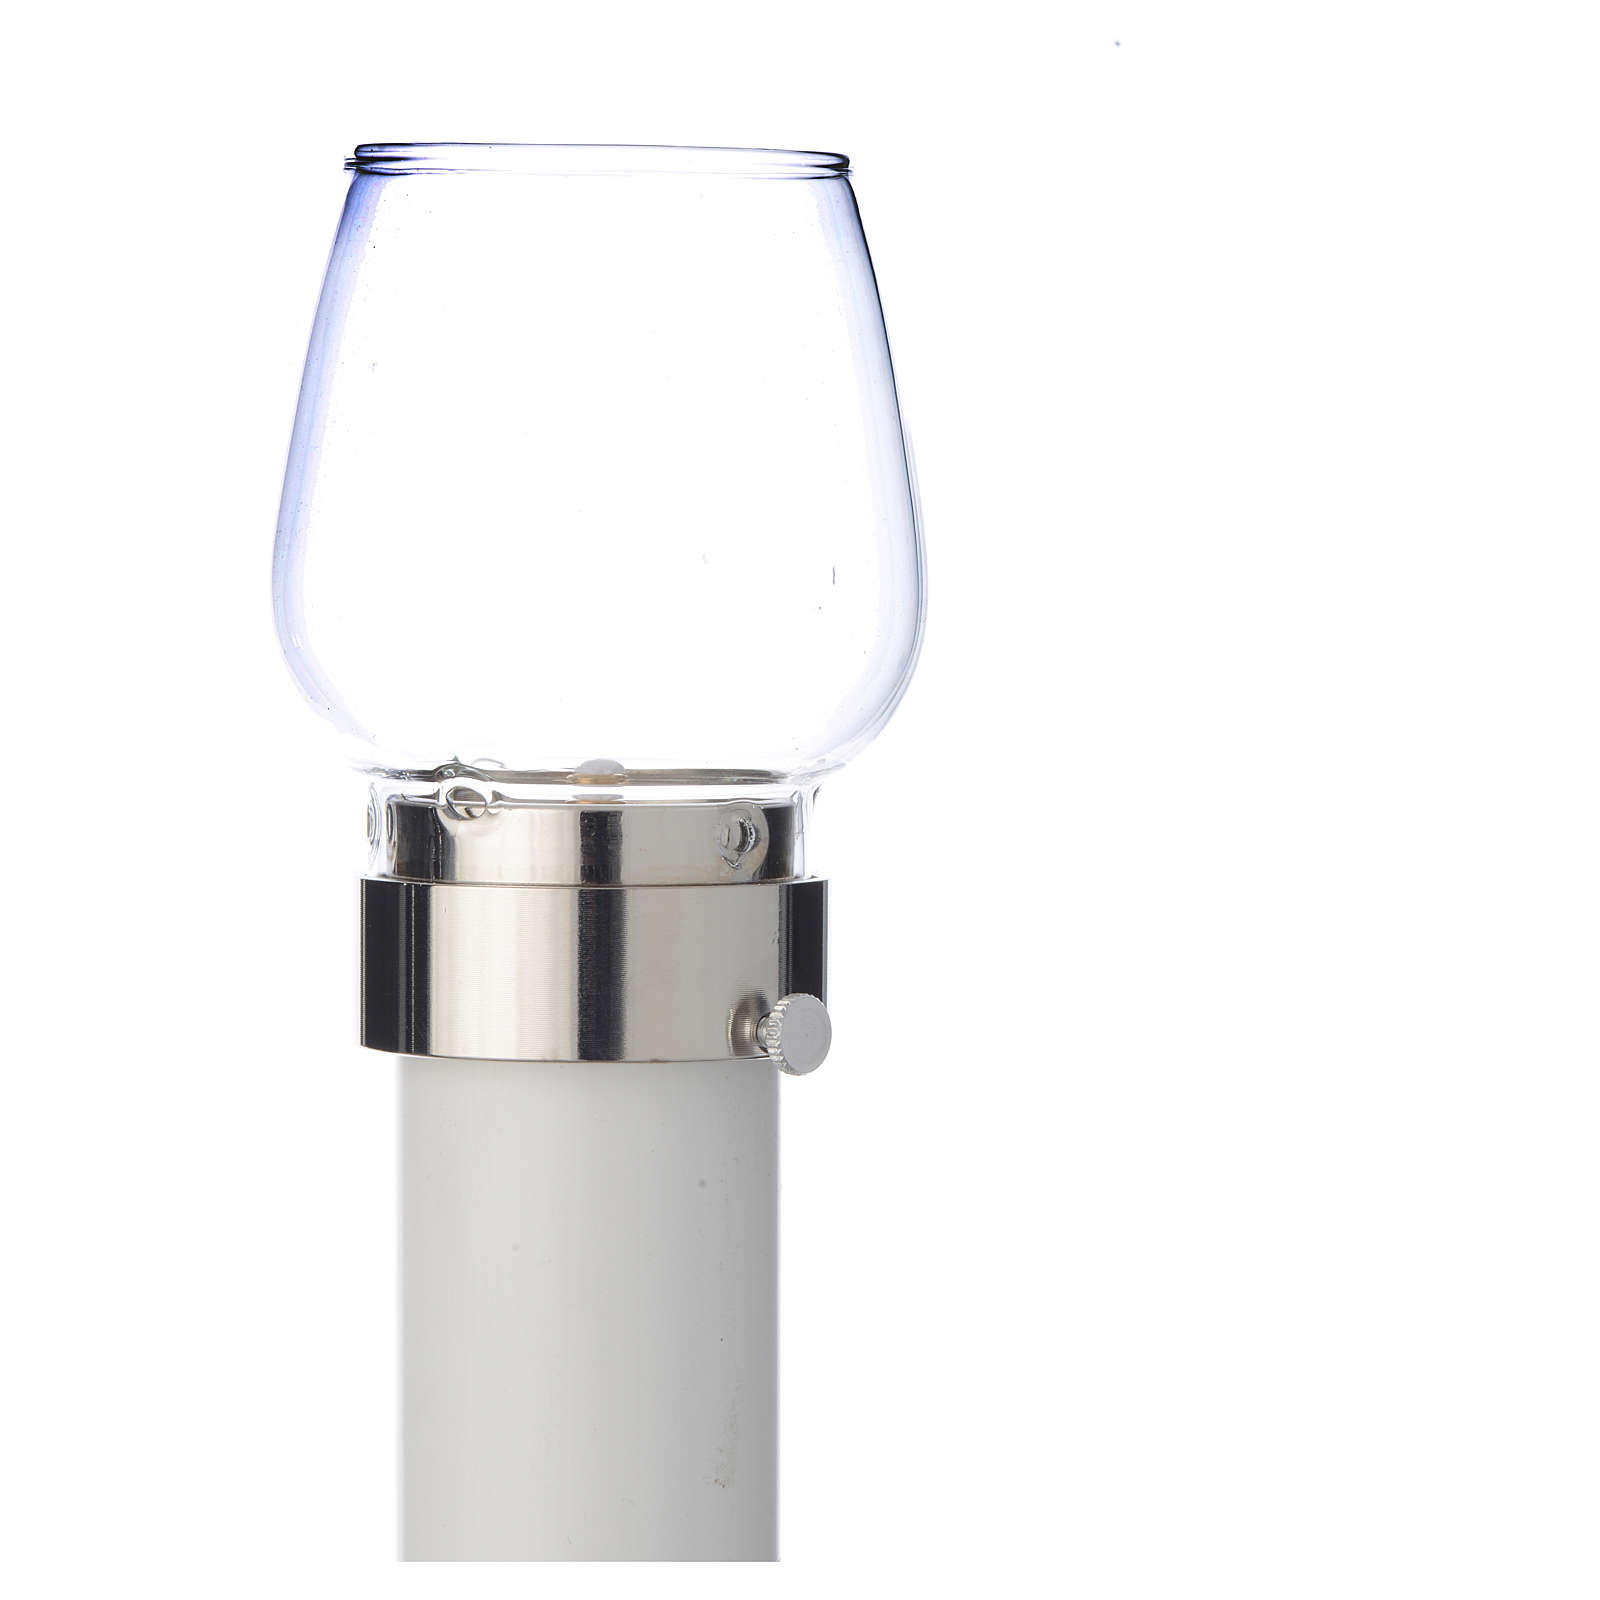 Wind-proof lamp, 100cm tall with silver base, 5cm diameter 3